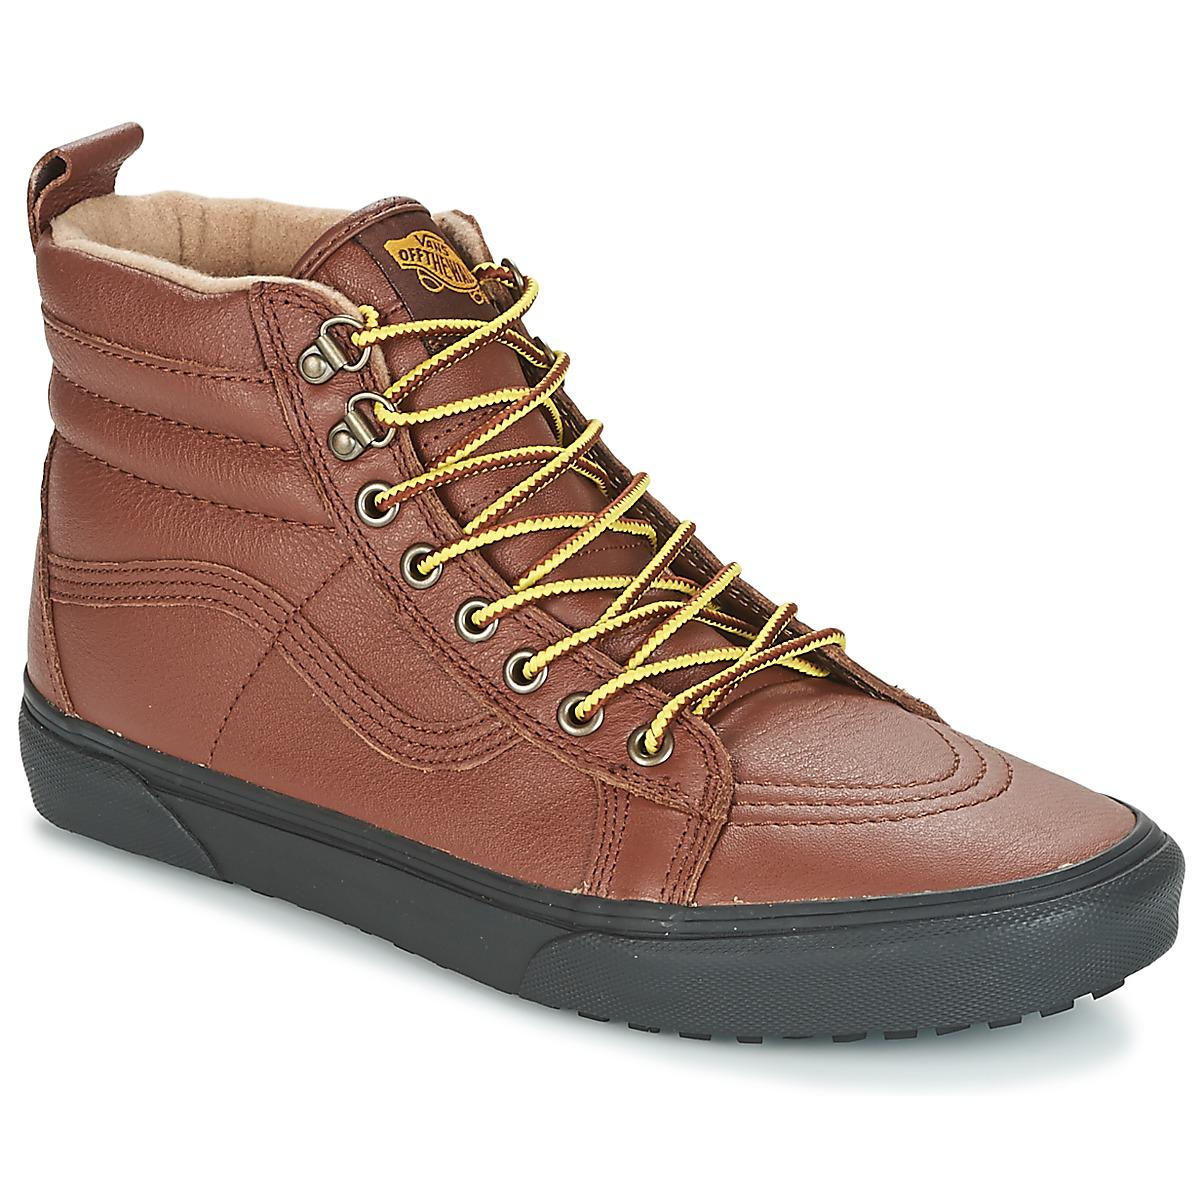 1d03044f86 Vans Sk8-hi Mte Men s Shoes (high-top Trainers) In Brown in Brown ...